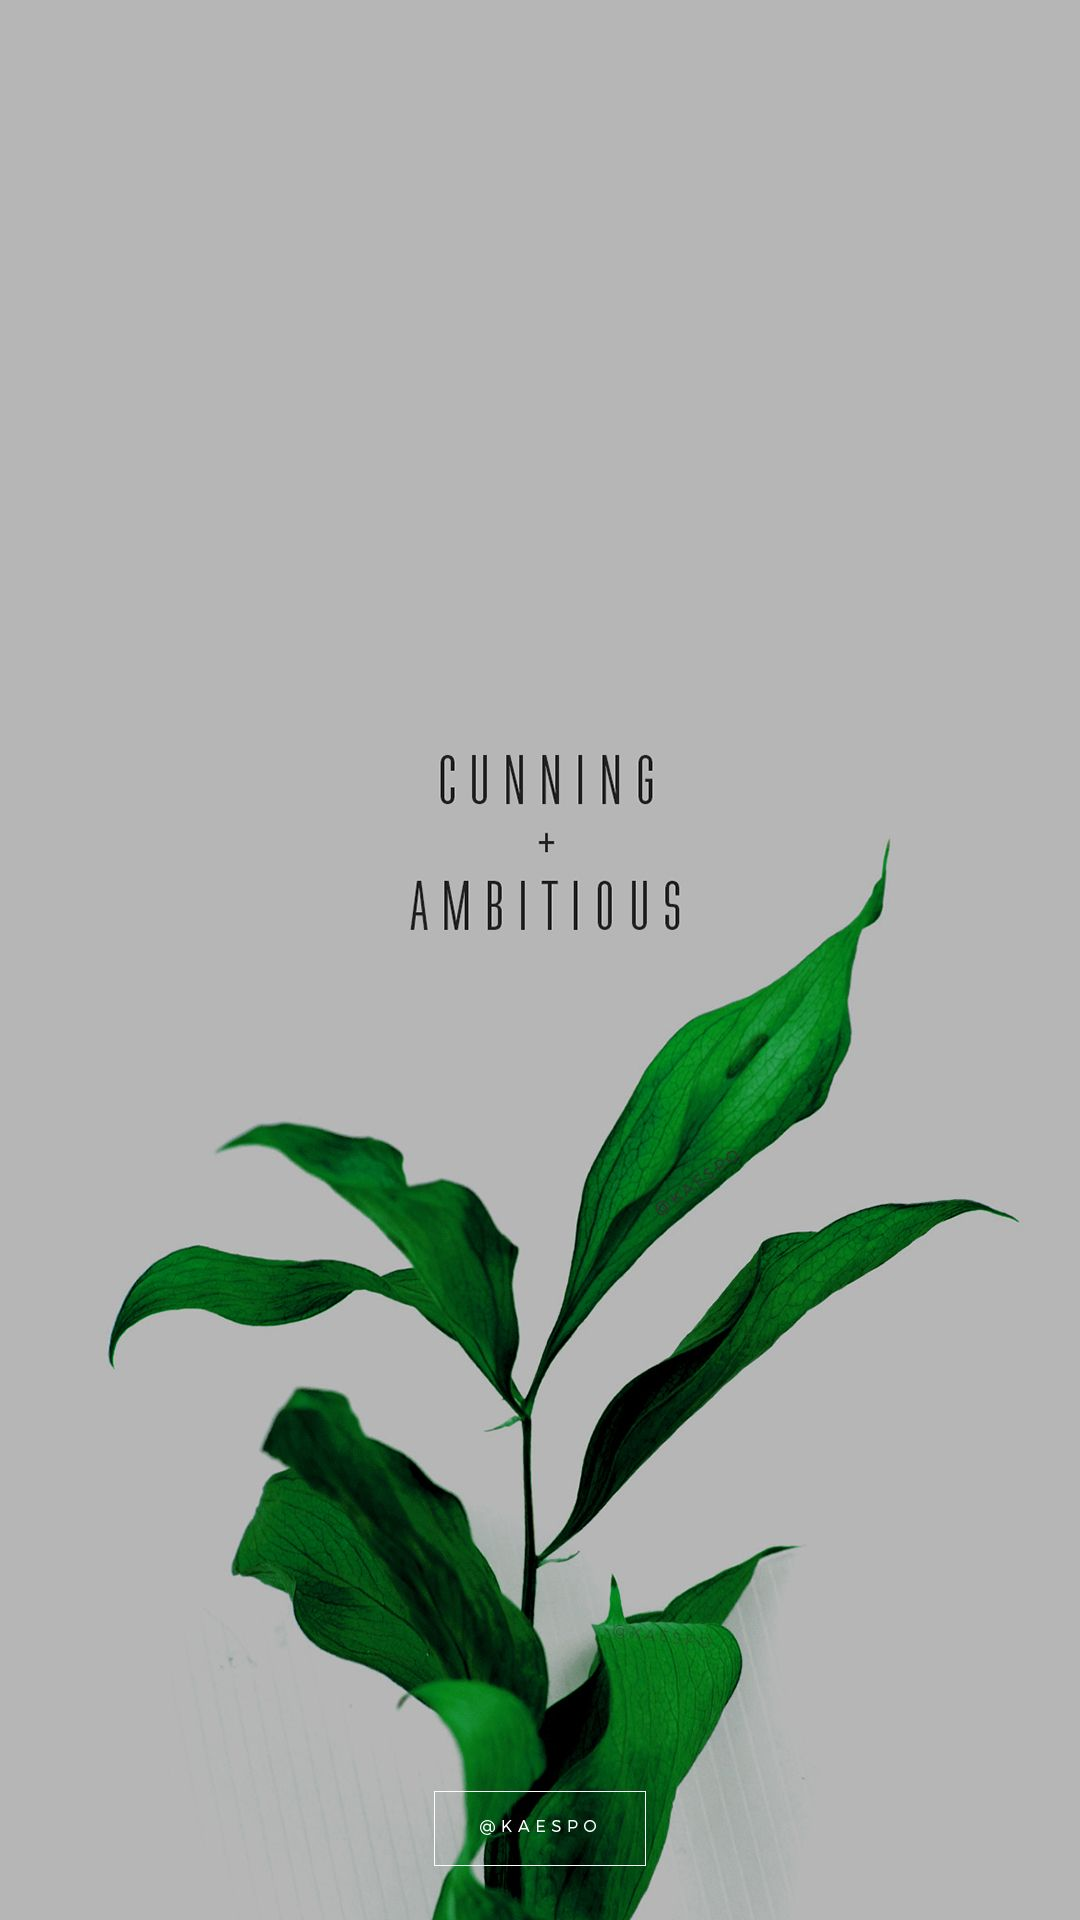 Cunning and ambitious quote on green floral background for Where can i get wallpaper